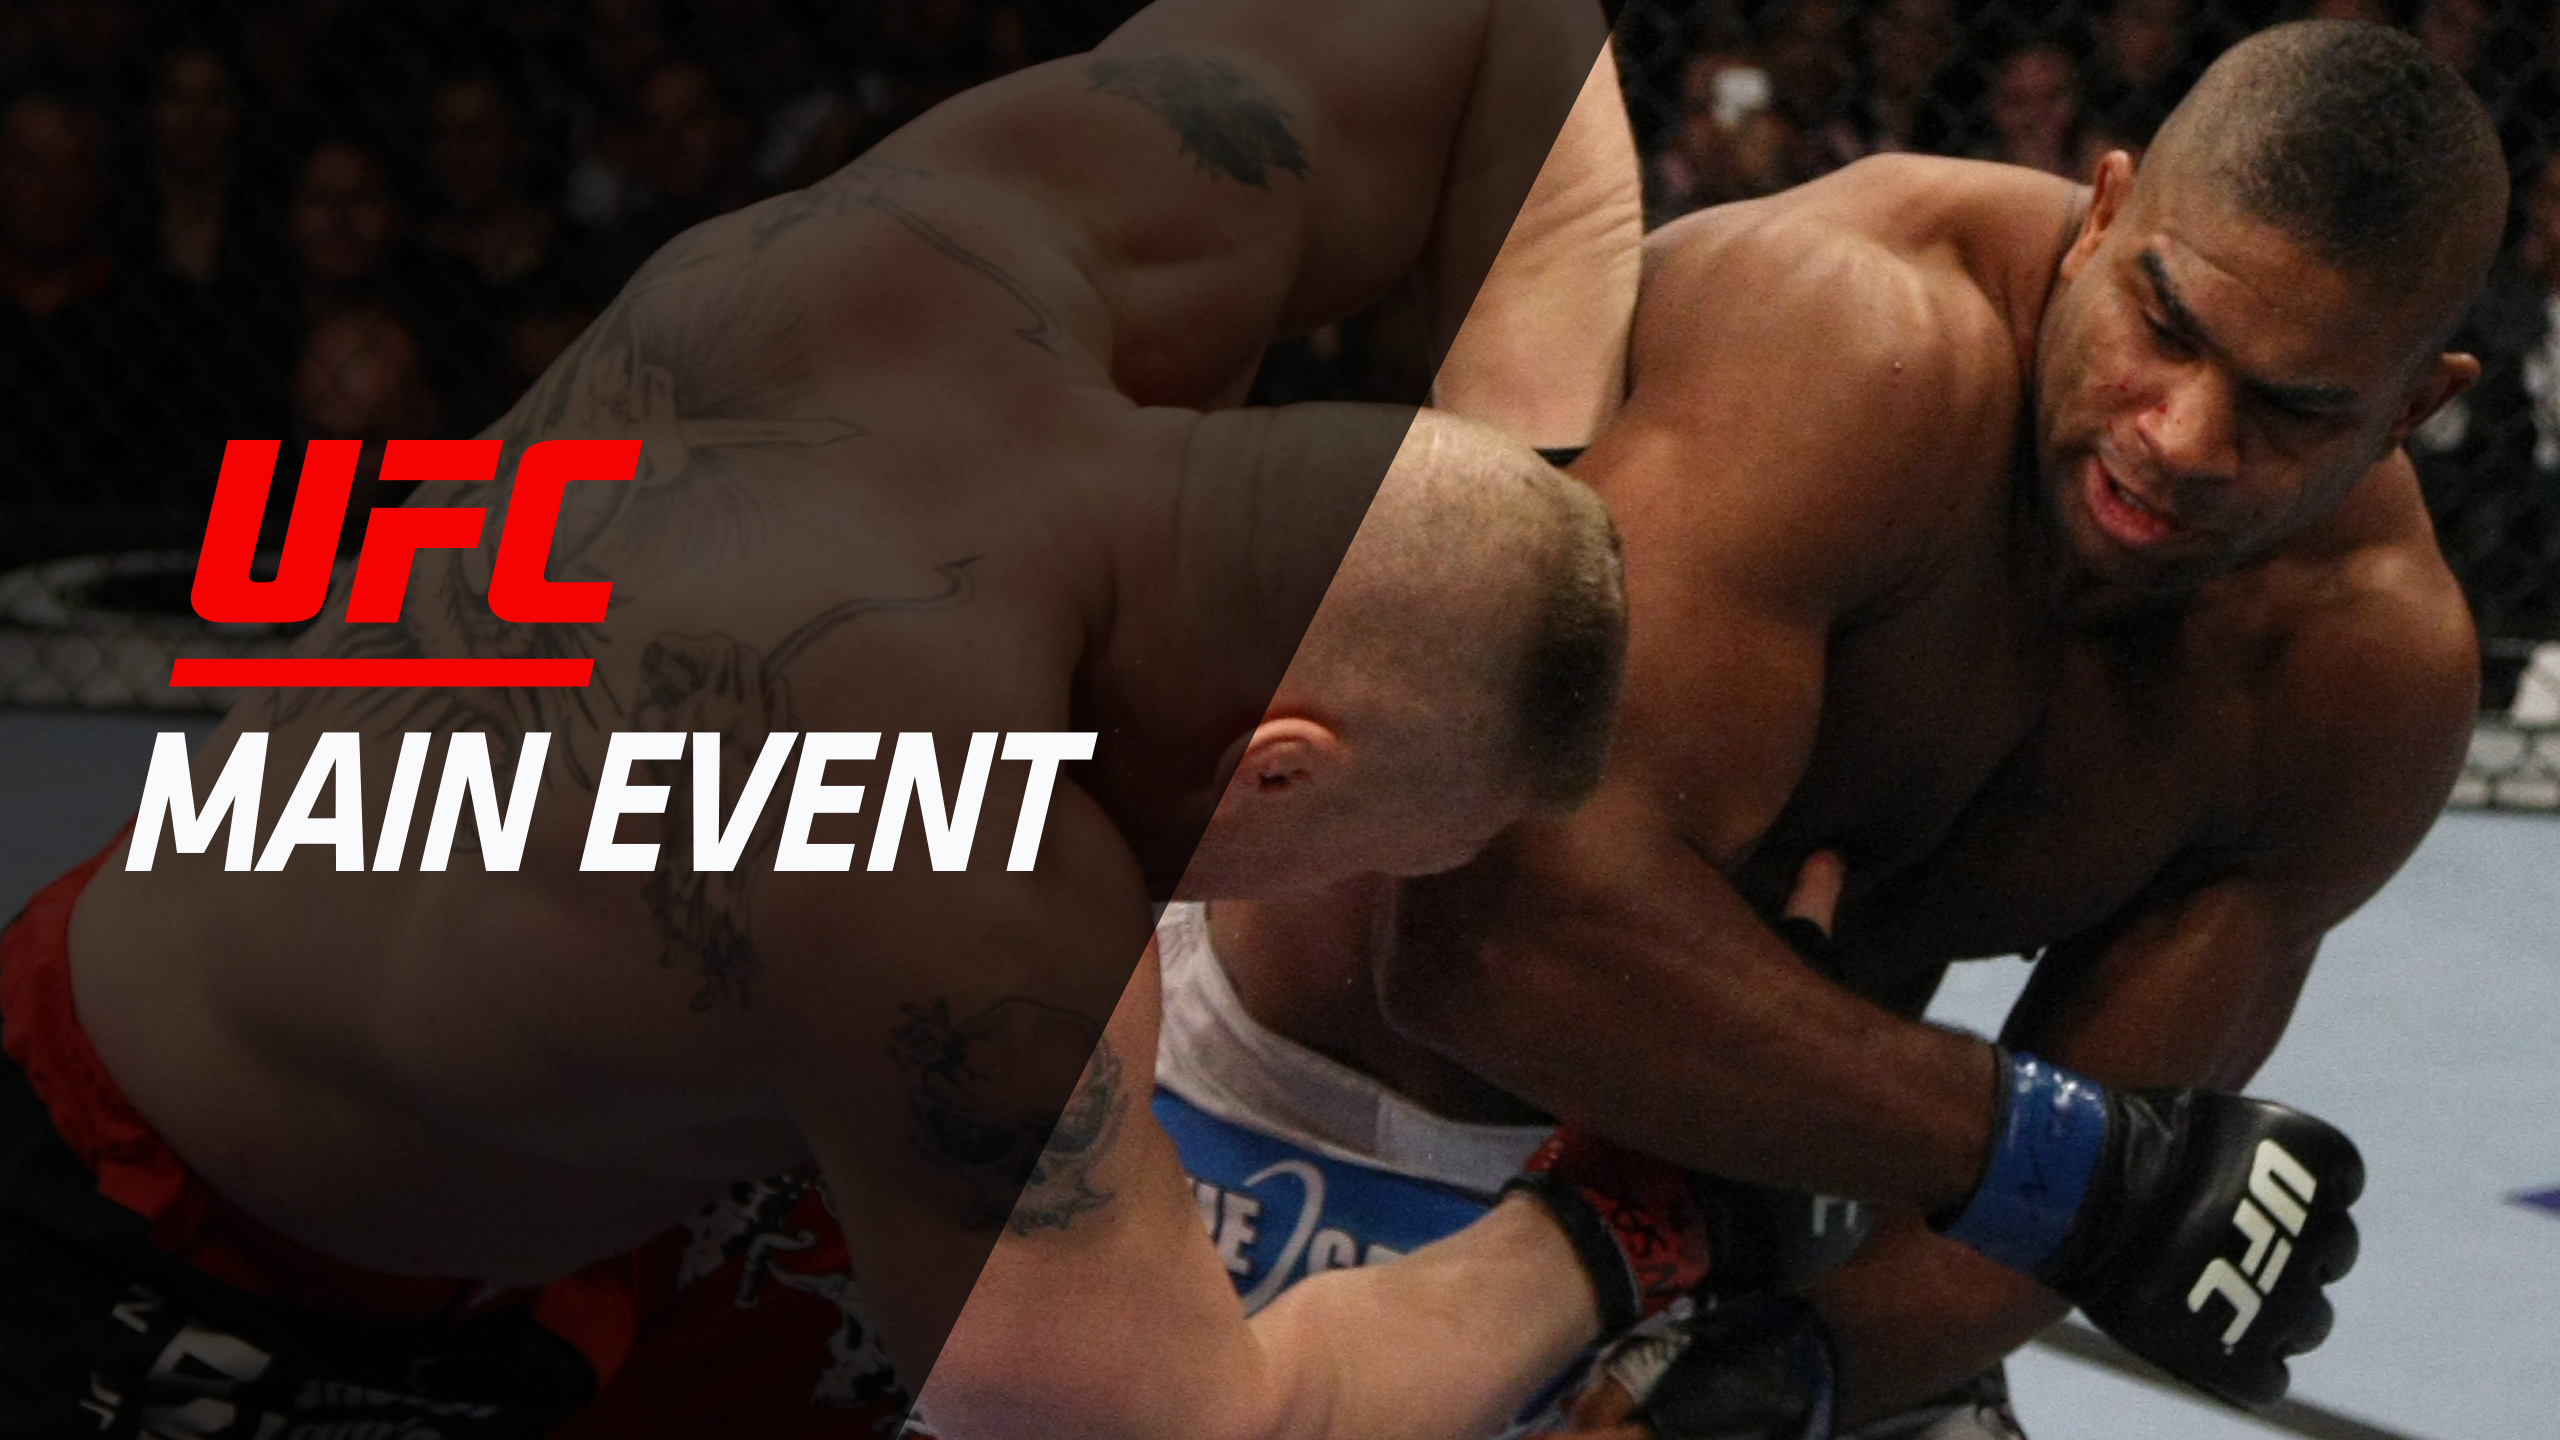 UFC Main Event: Lesnar vs. Overeem/Diaz vs. Cerrone